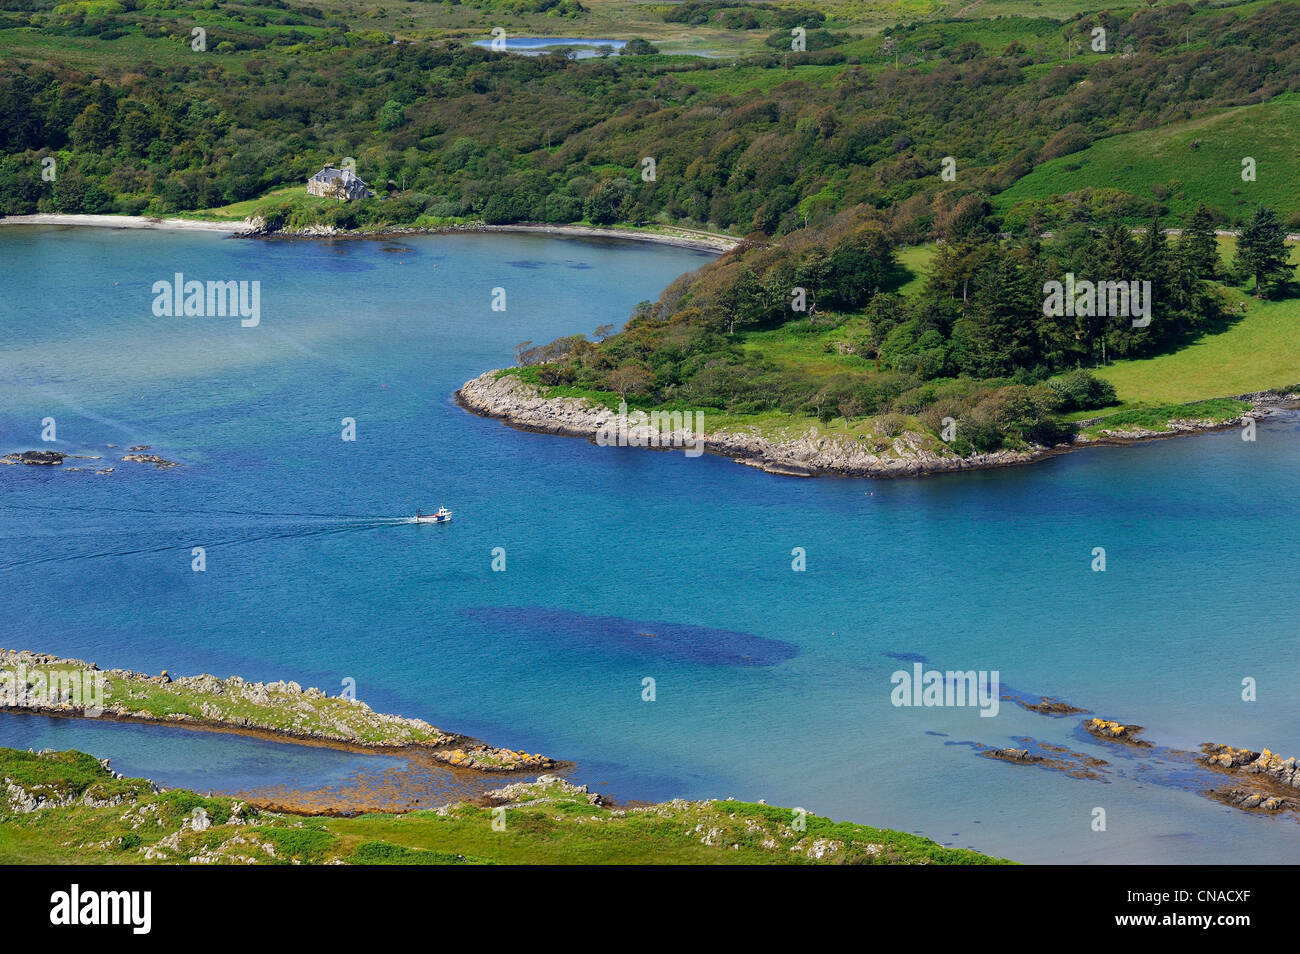 United Kingdom, Scotland, Inner Hebrides, Islay Island, Ardilistry Bay on the East Coast (aerial view) - Stock Image